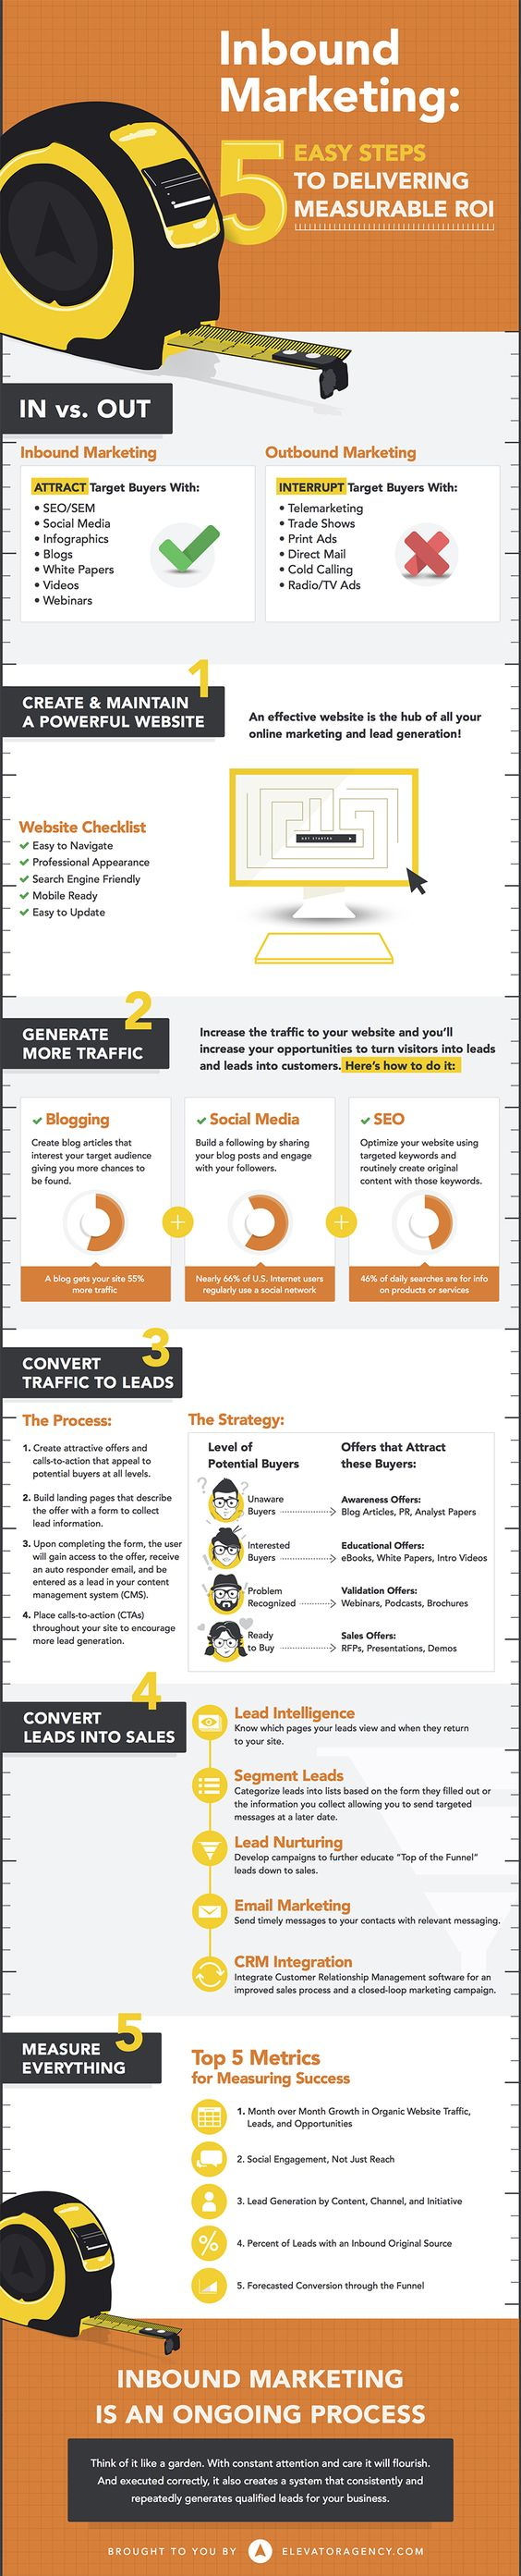 5 Steps to a Successful Inbound Marketing Campaign